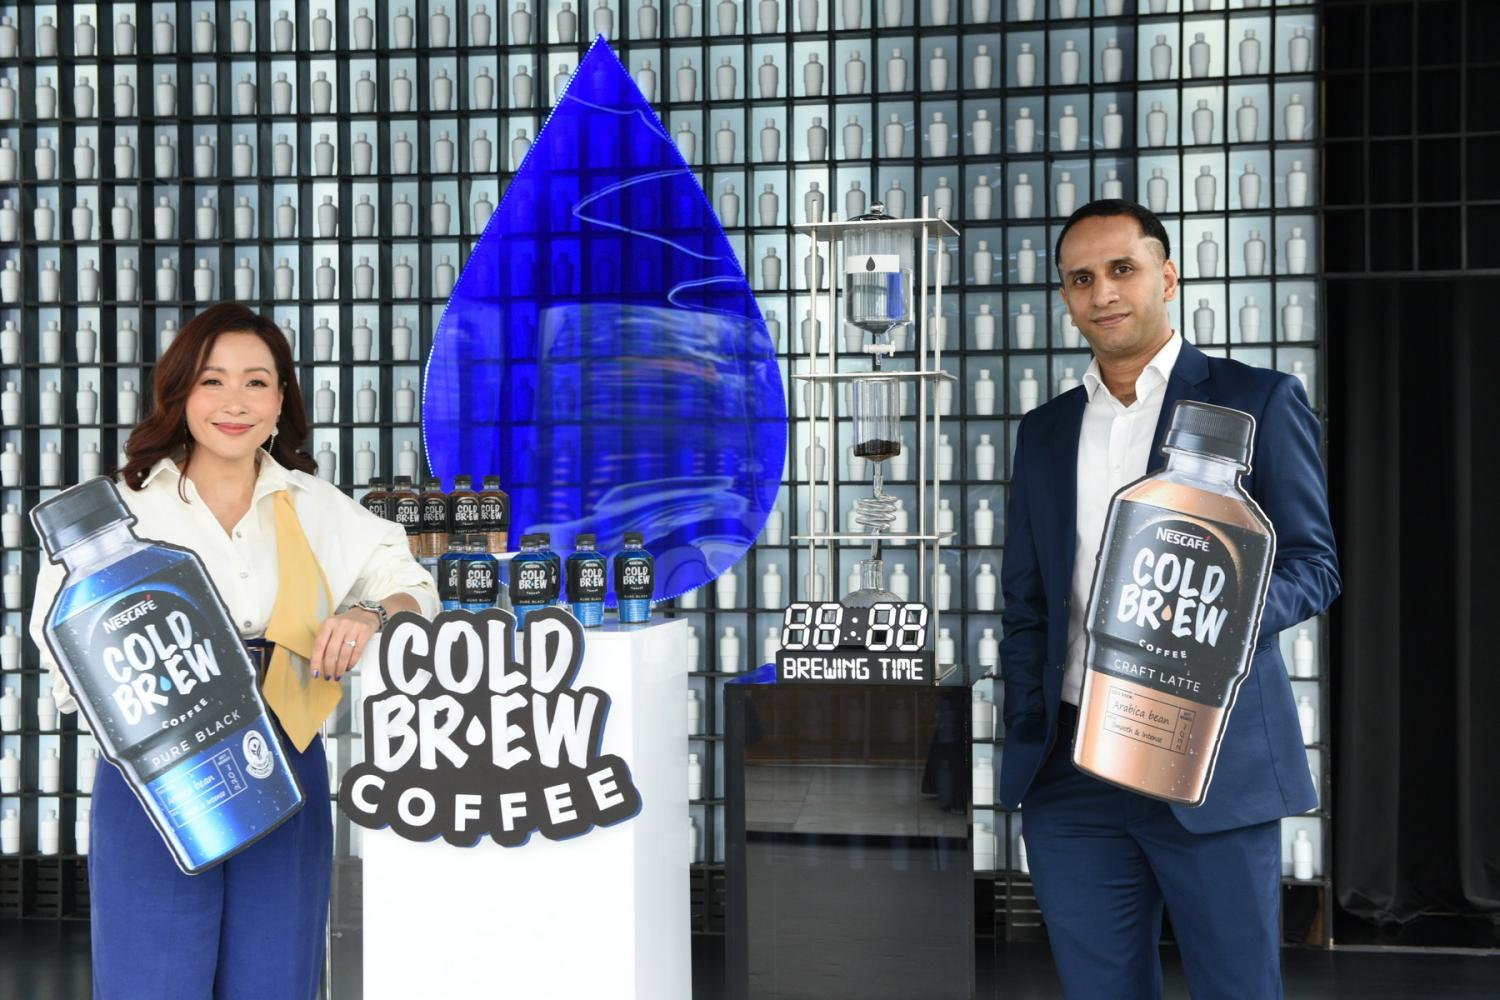 Ms Sriprapha says Nescafe aims to dominate the ready-to-drink coffee market.